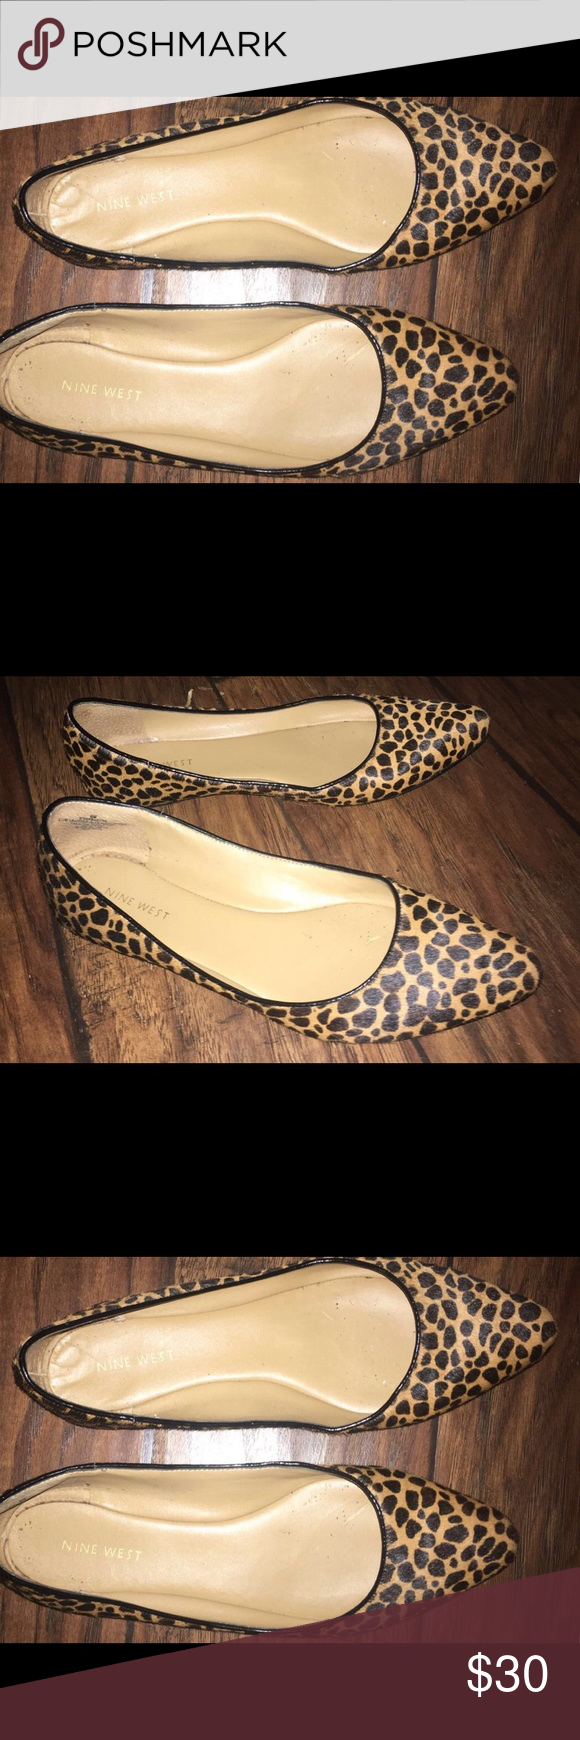 Nine West flats Worn maybe 4 times. Size 8, in great shape! Nine West Shoes Flats & Loafers